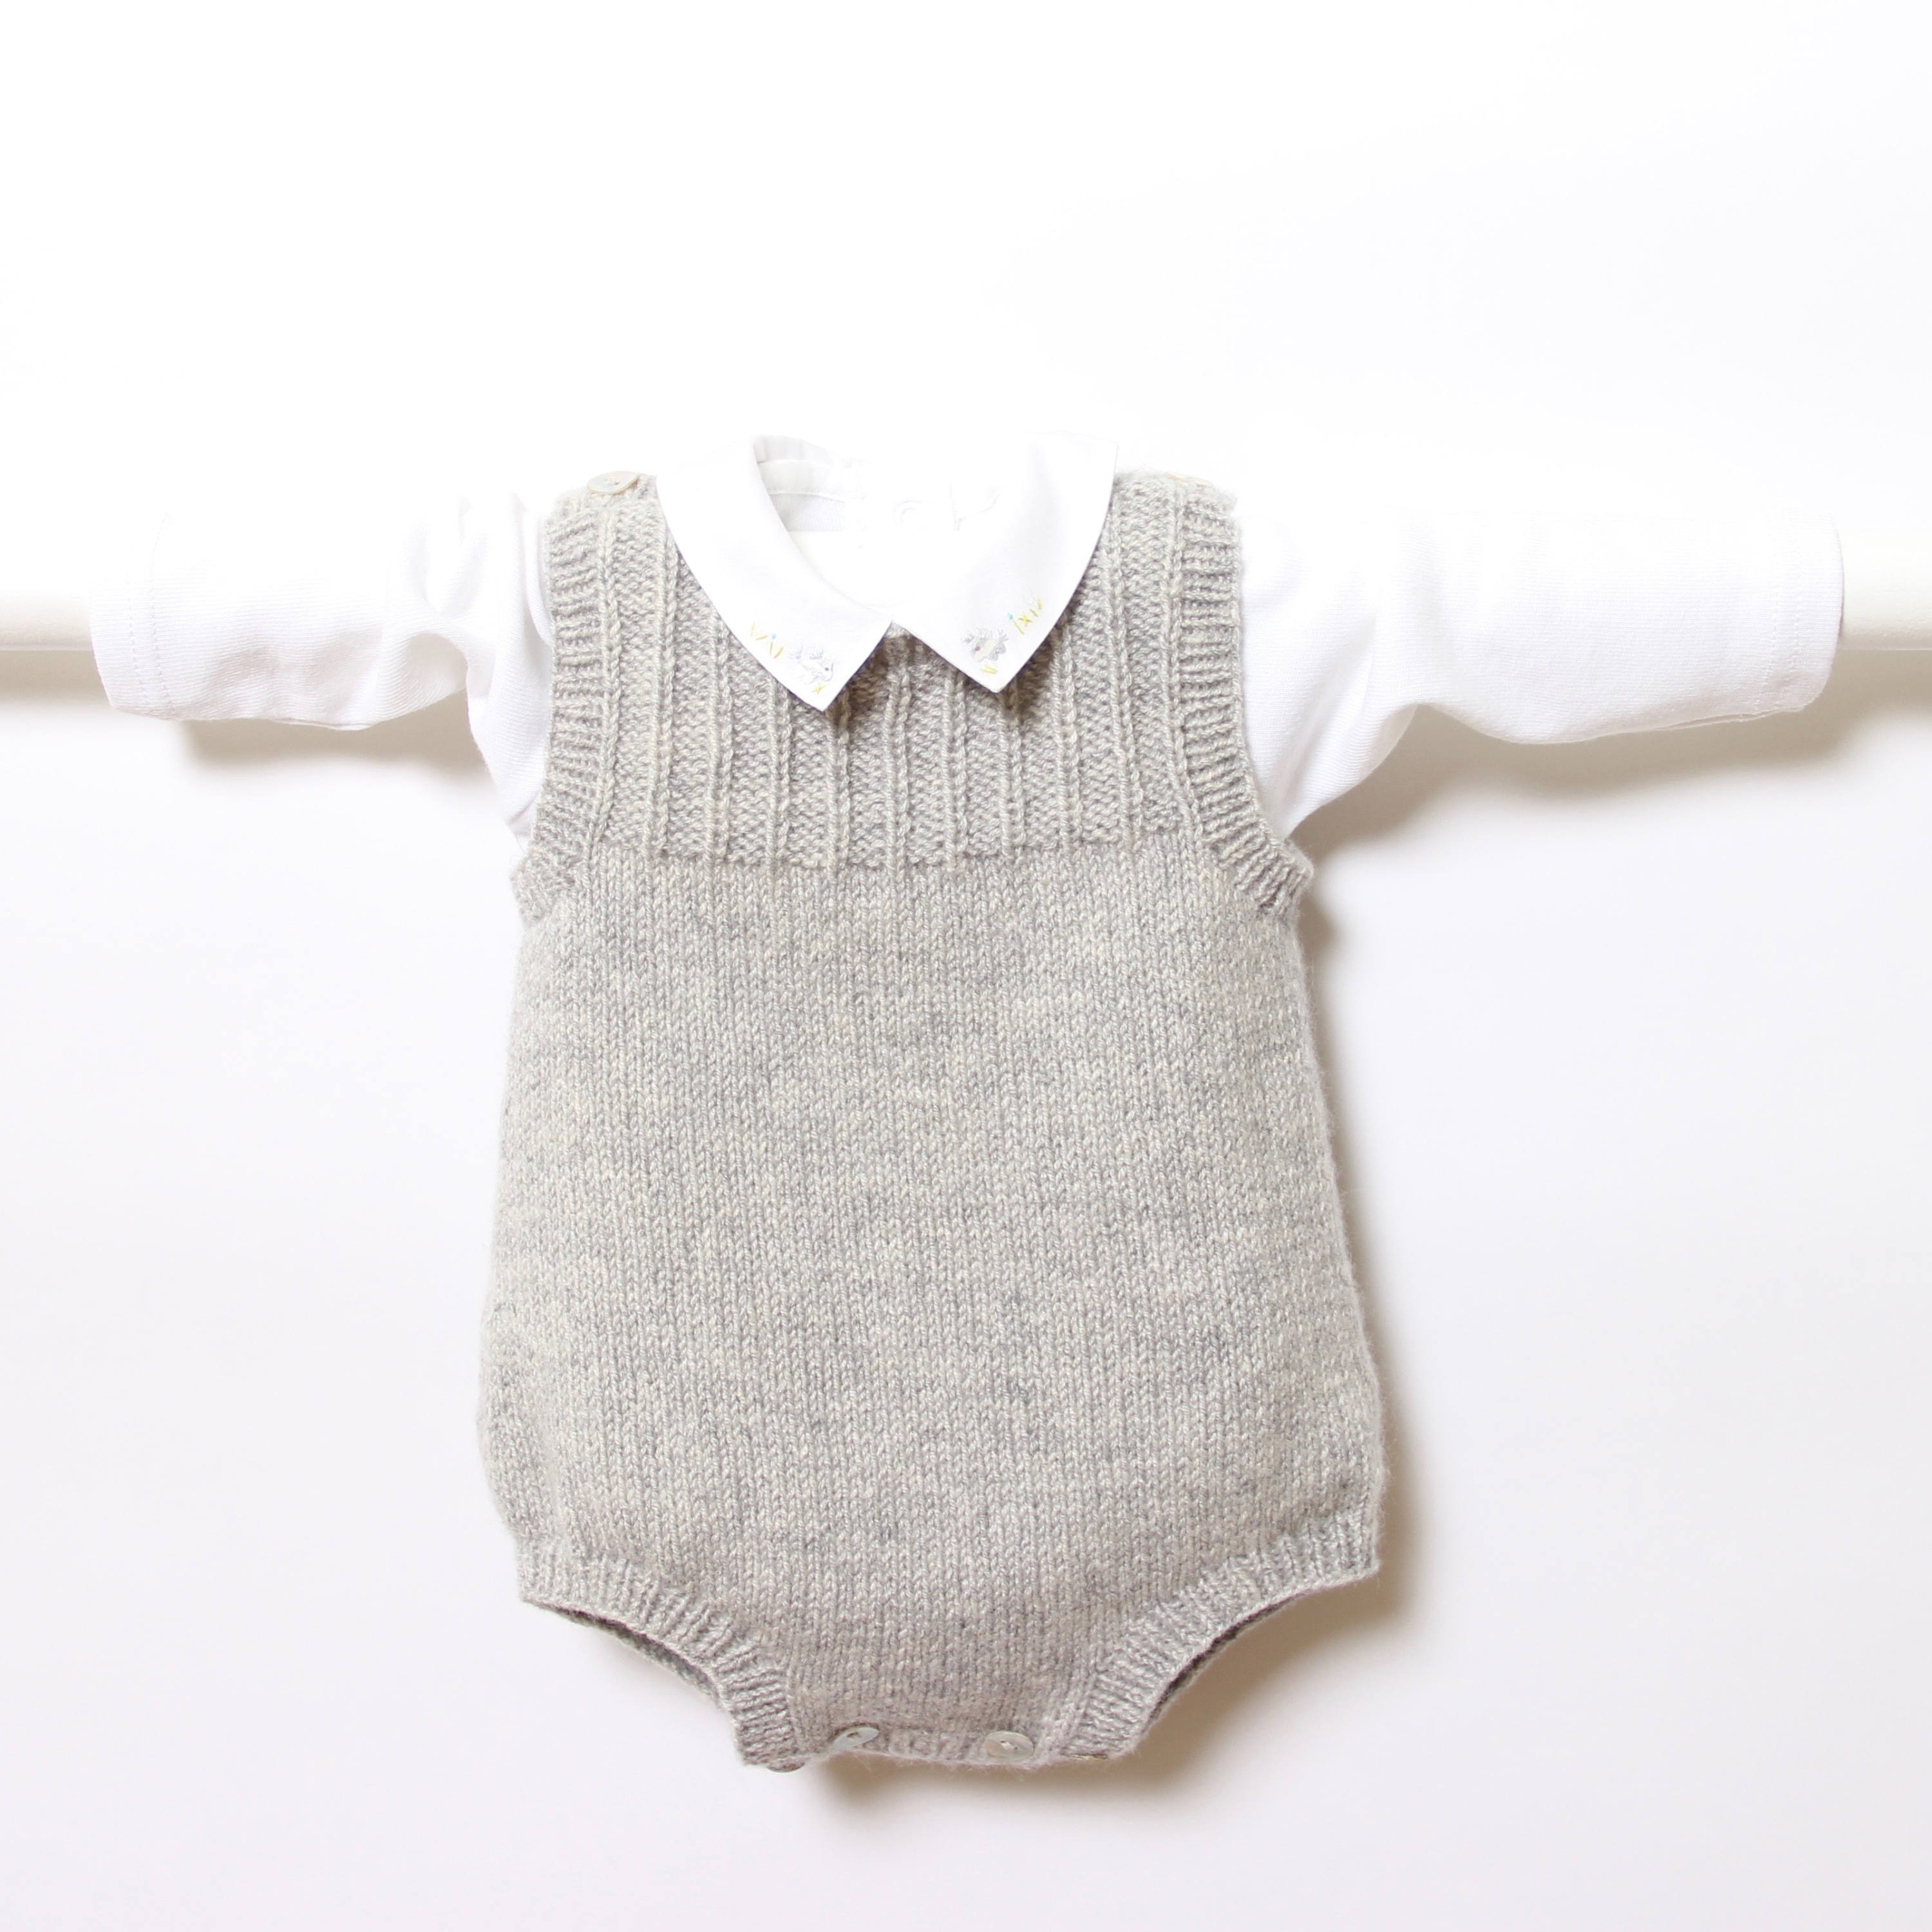 a68bf8c47 knit Baby Romper Onesie Pattern Instructions in French PDF Instant ...